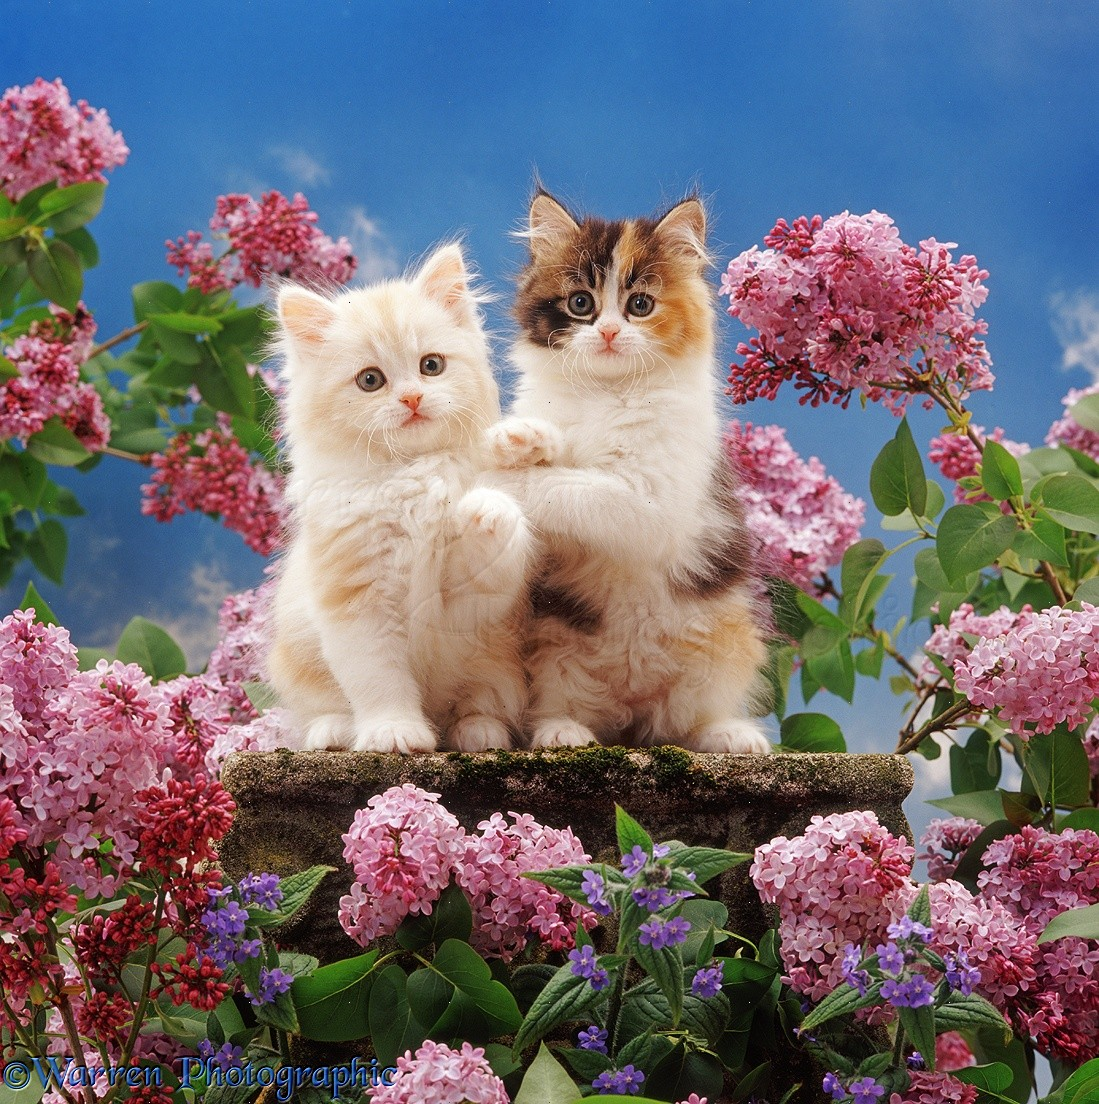 Pink Animal Print Wallpaper Two Kittens And Flowers Photo Wp37631